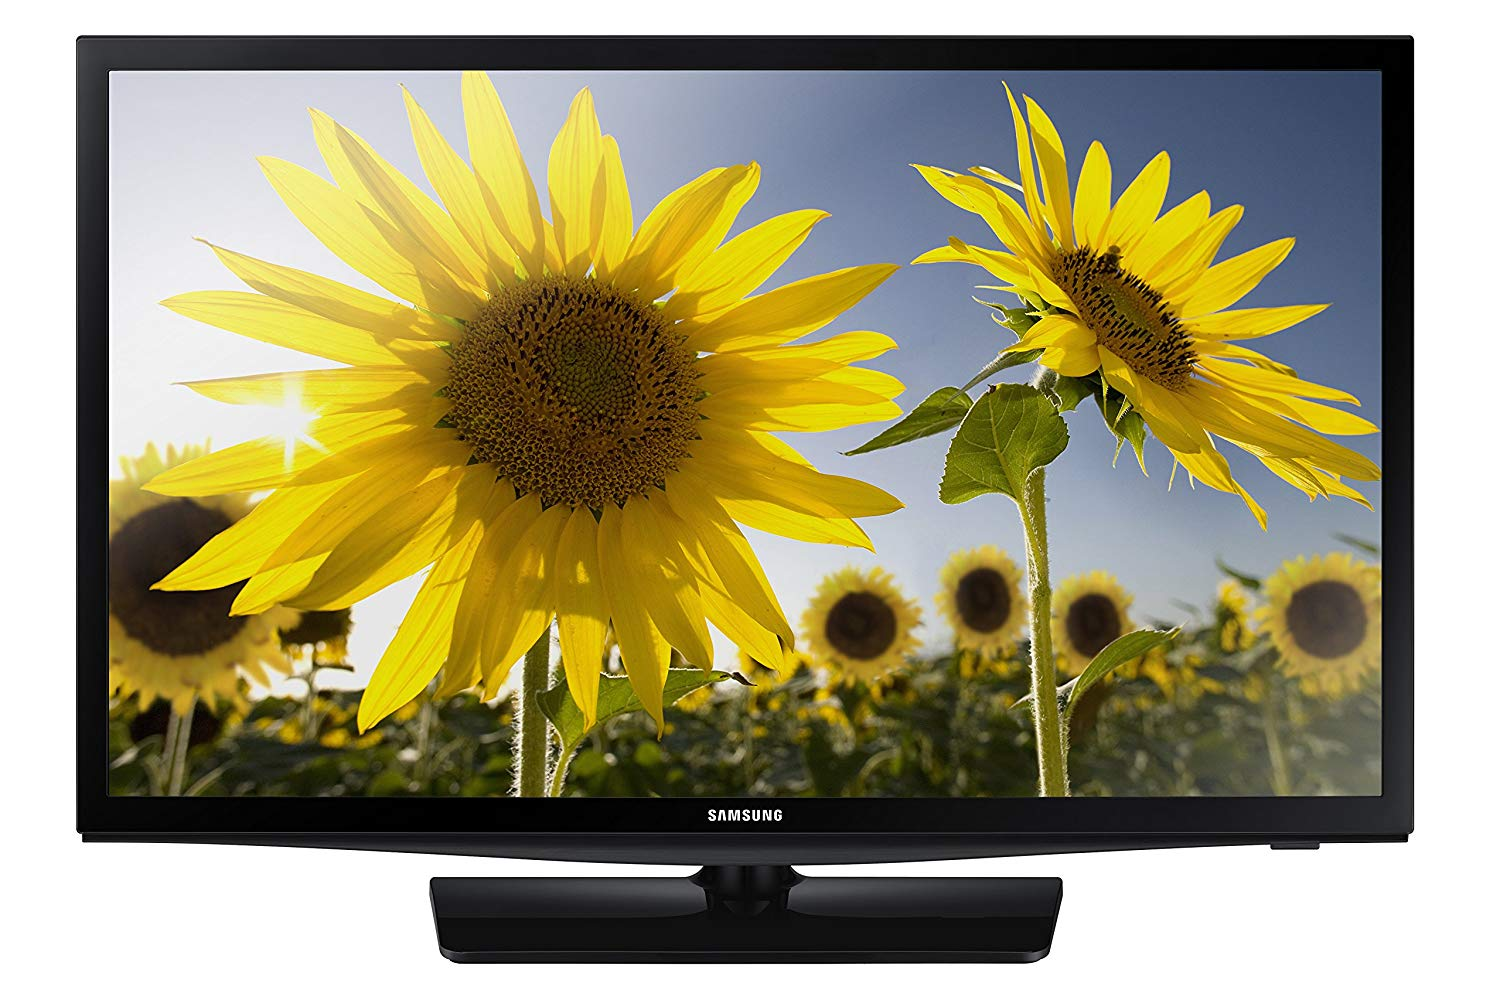 Samsung UN24H4500 24-Inch Smart LED TV